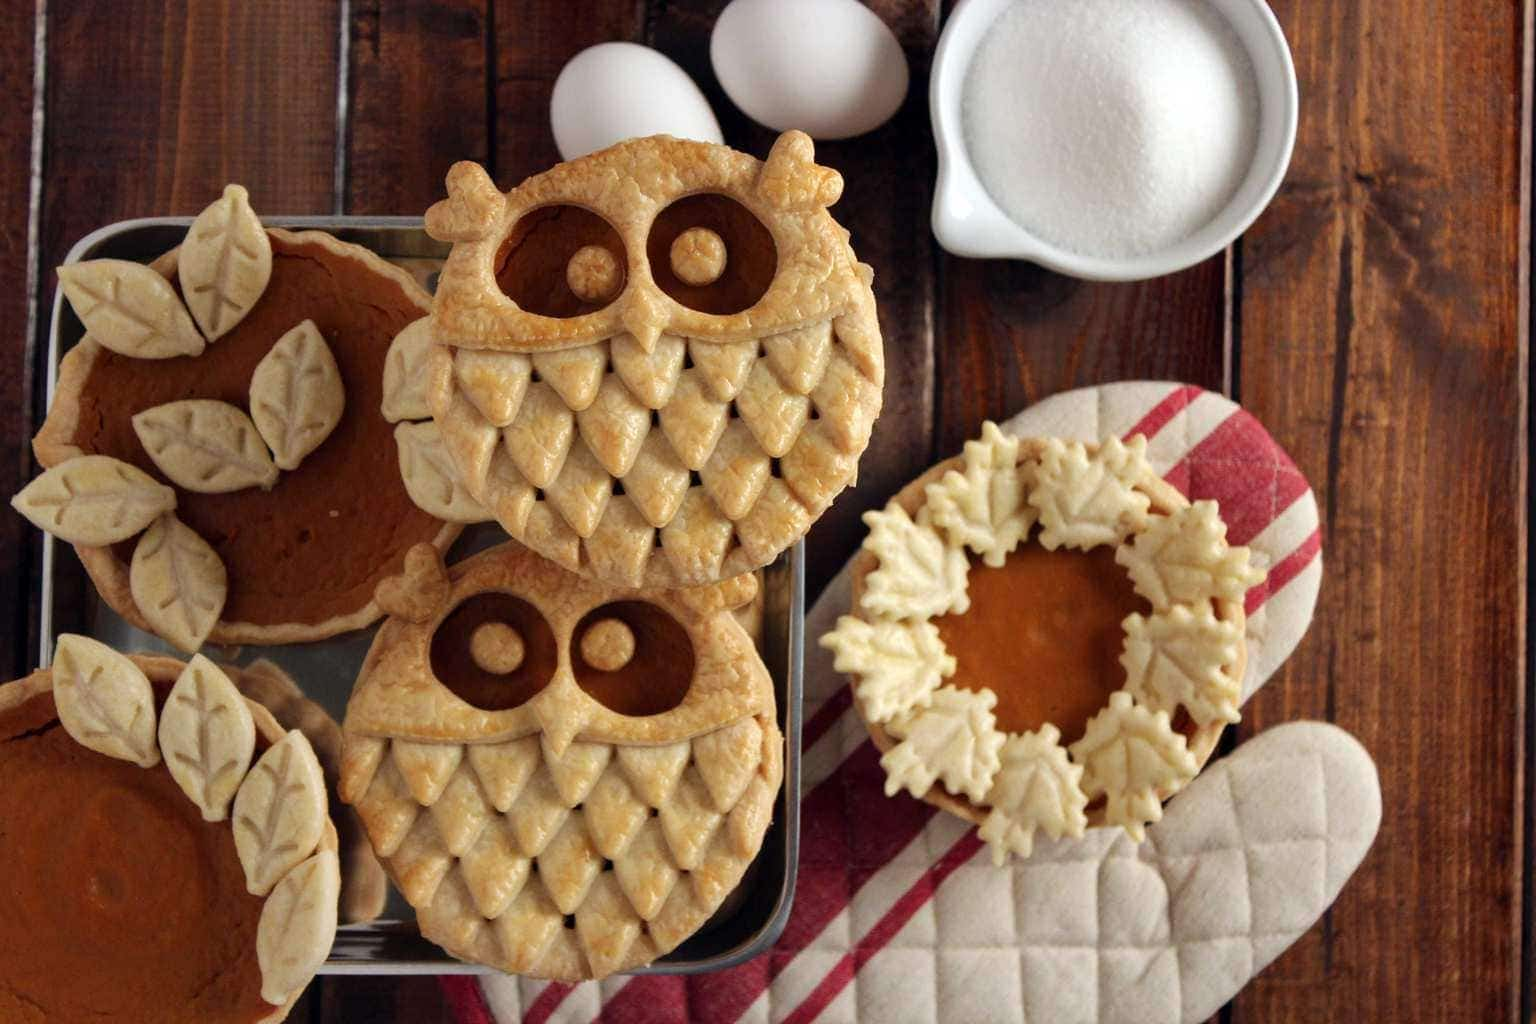 Sweet Explorations created this darling owl crust